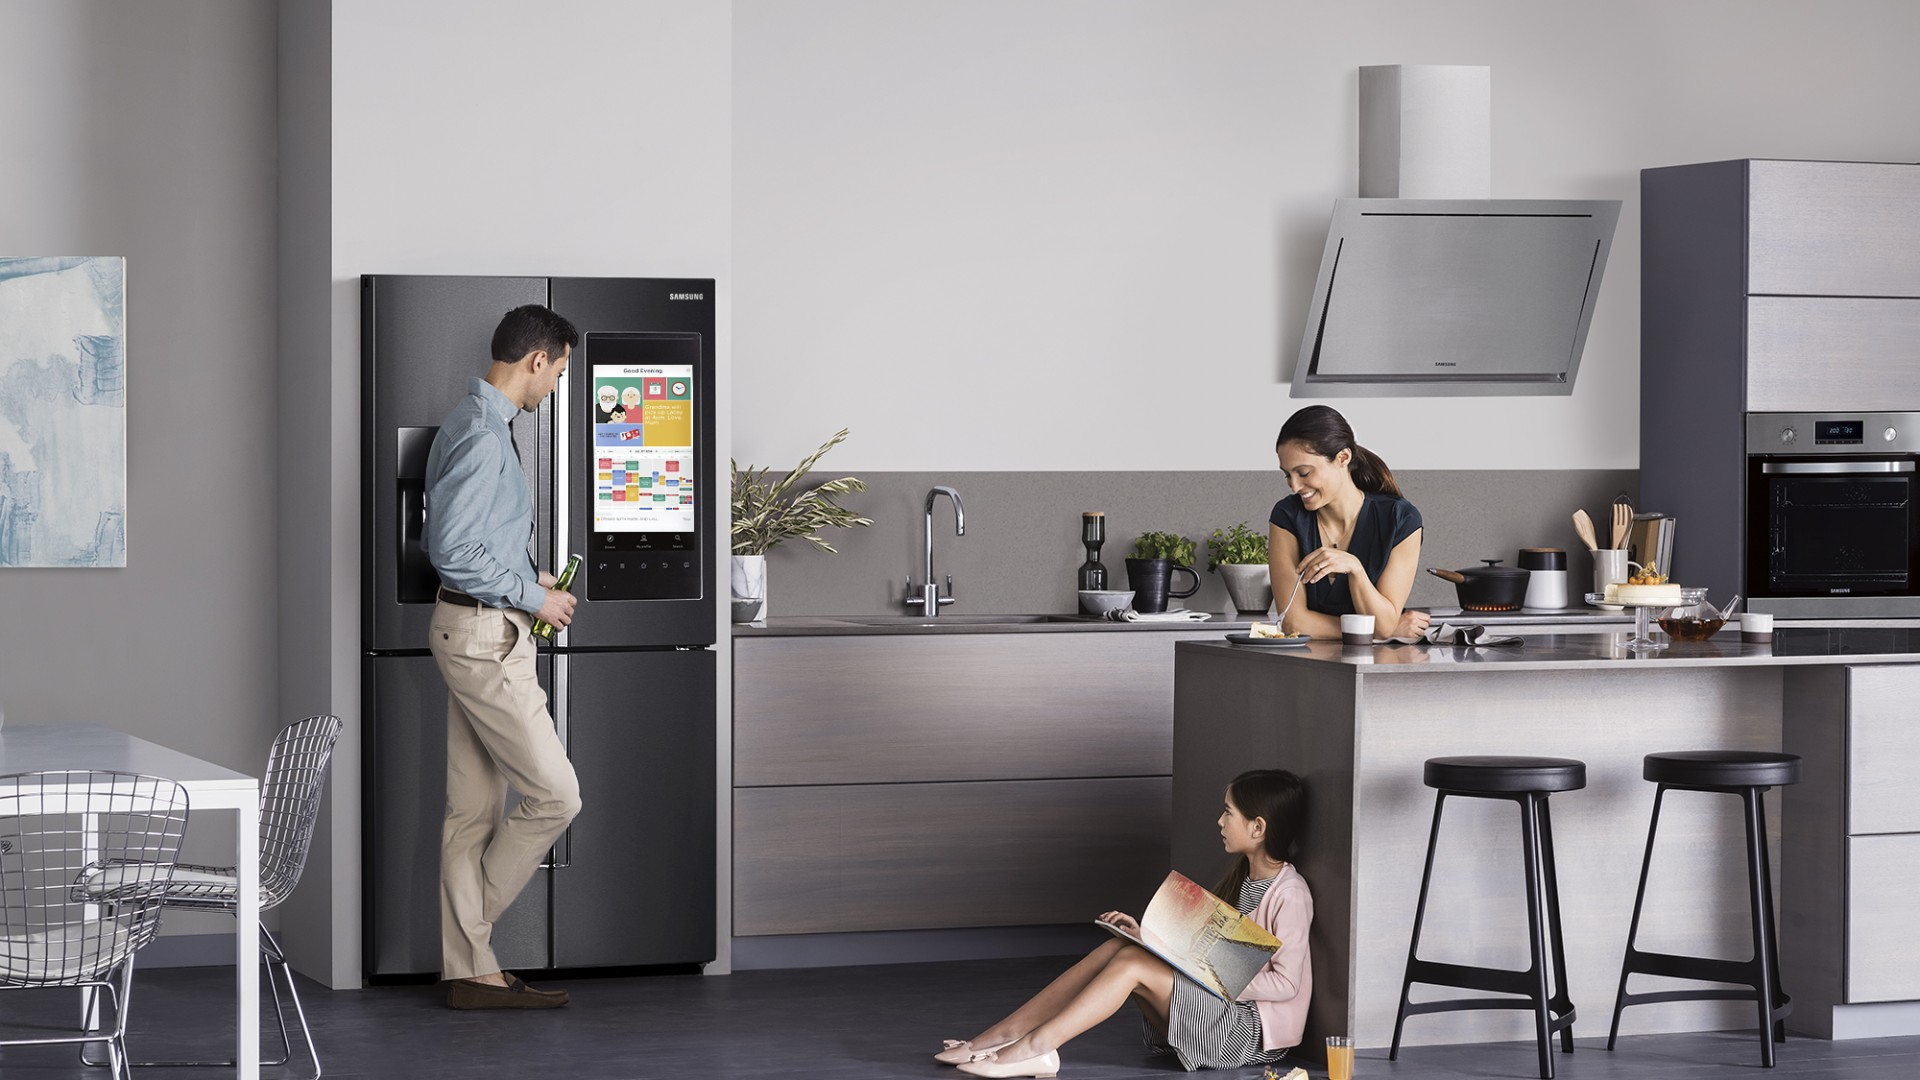 Figure 1. Samsung smart fridge advertising, featuring an idealized view of the kitchen.